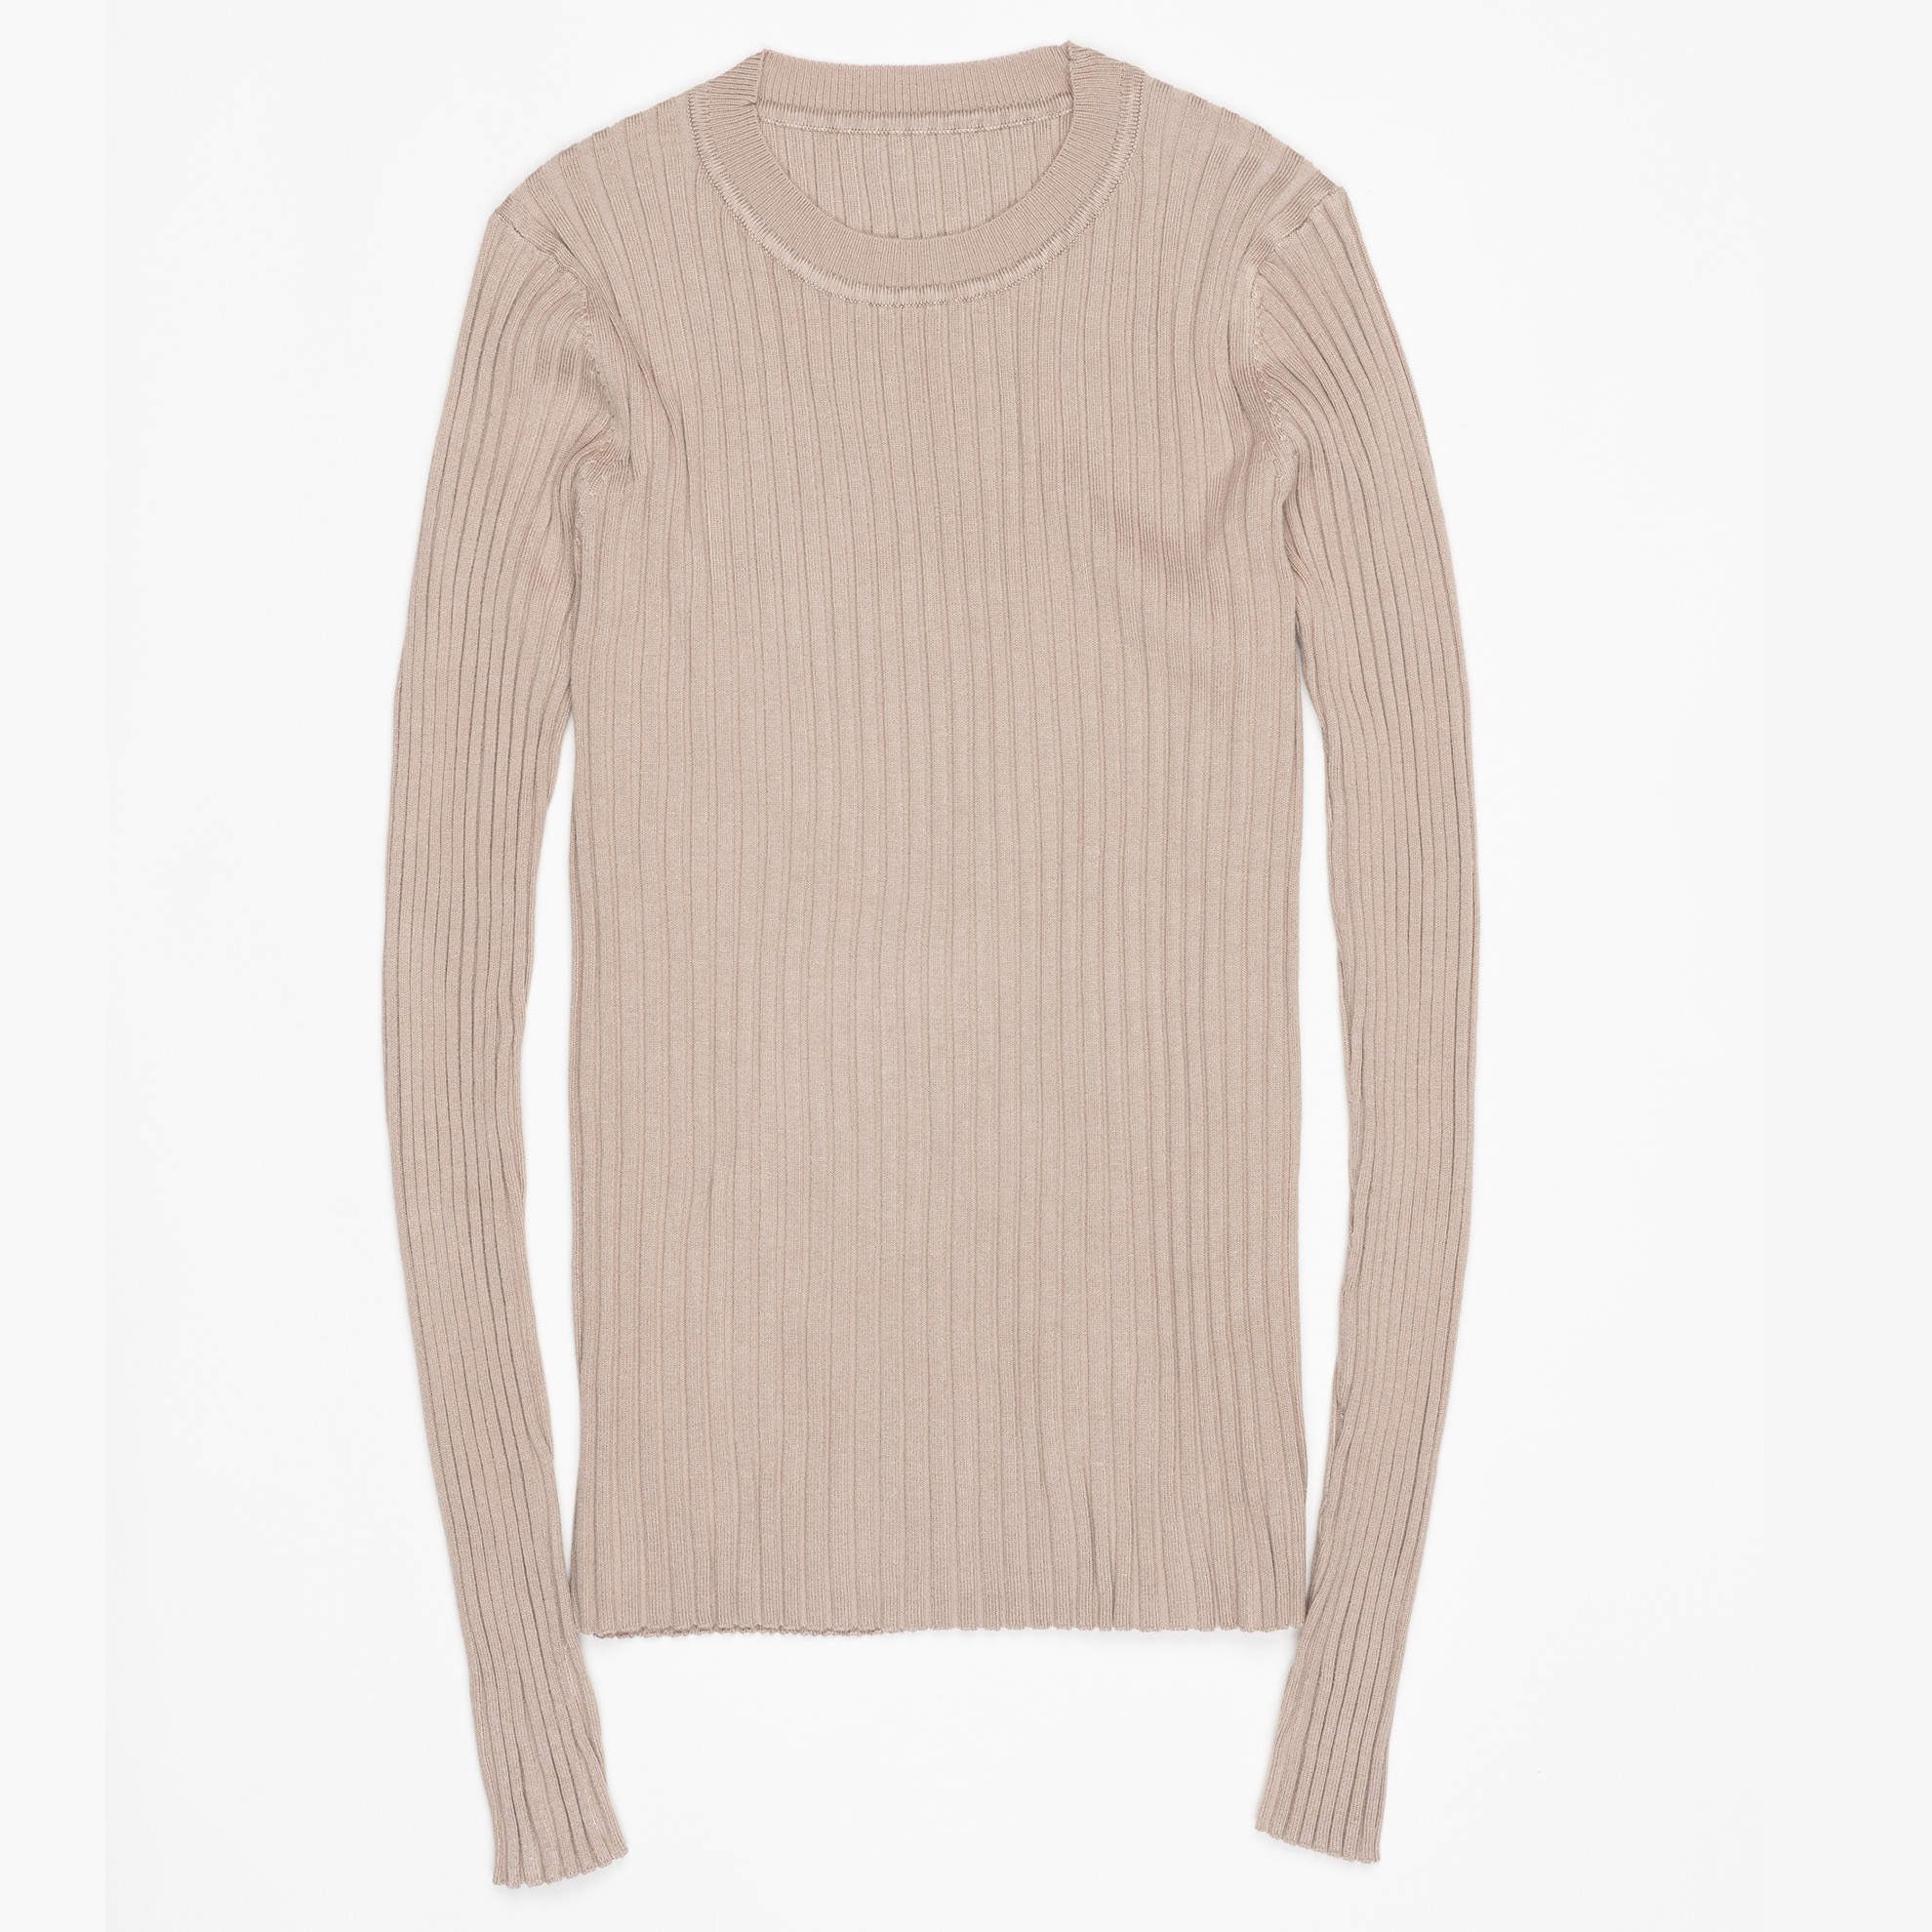 Women Sweater Pullover Basic Ribbed Sweaters Cotton Tops Knitted Solid Crew Neck With Thumb Hole 20